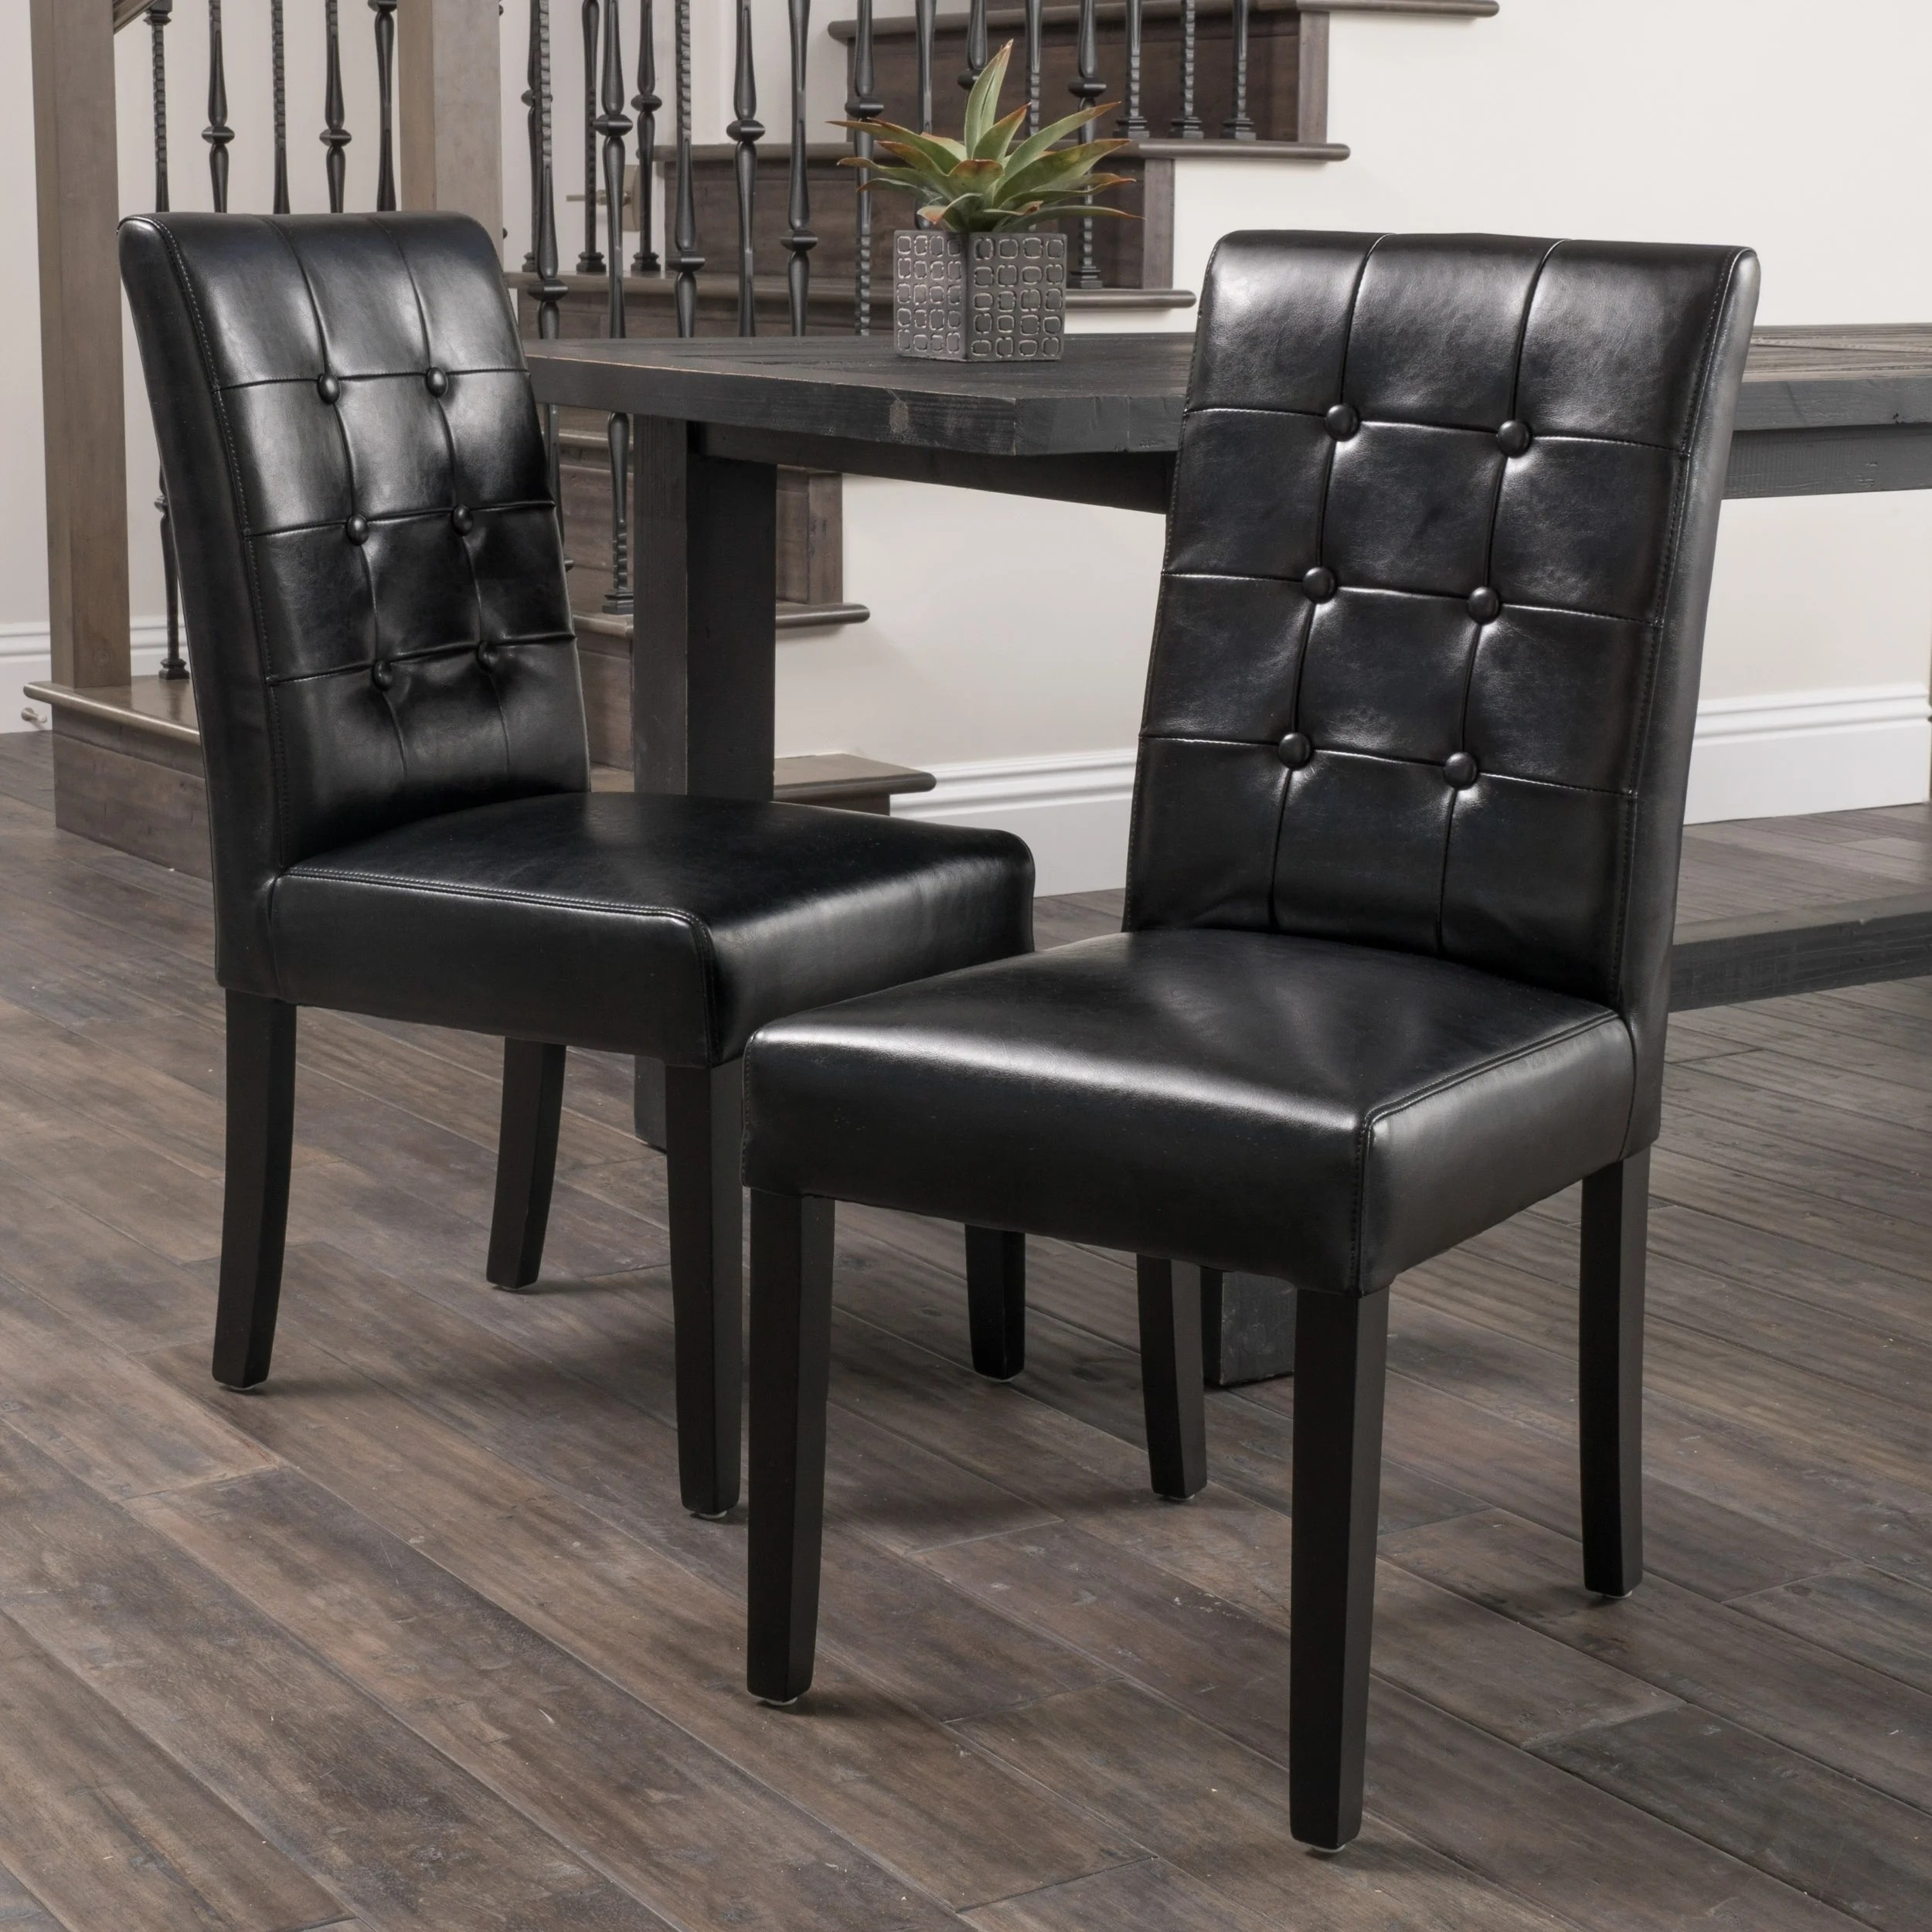 Black Leather Dining Chairs Roland Black Leather Dining Chairs Set Of 2 By Christopher Knight Home